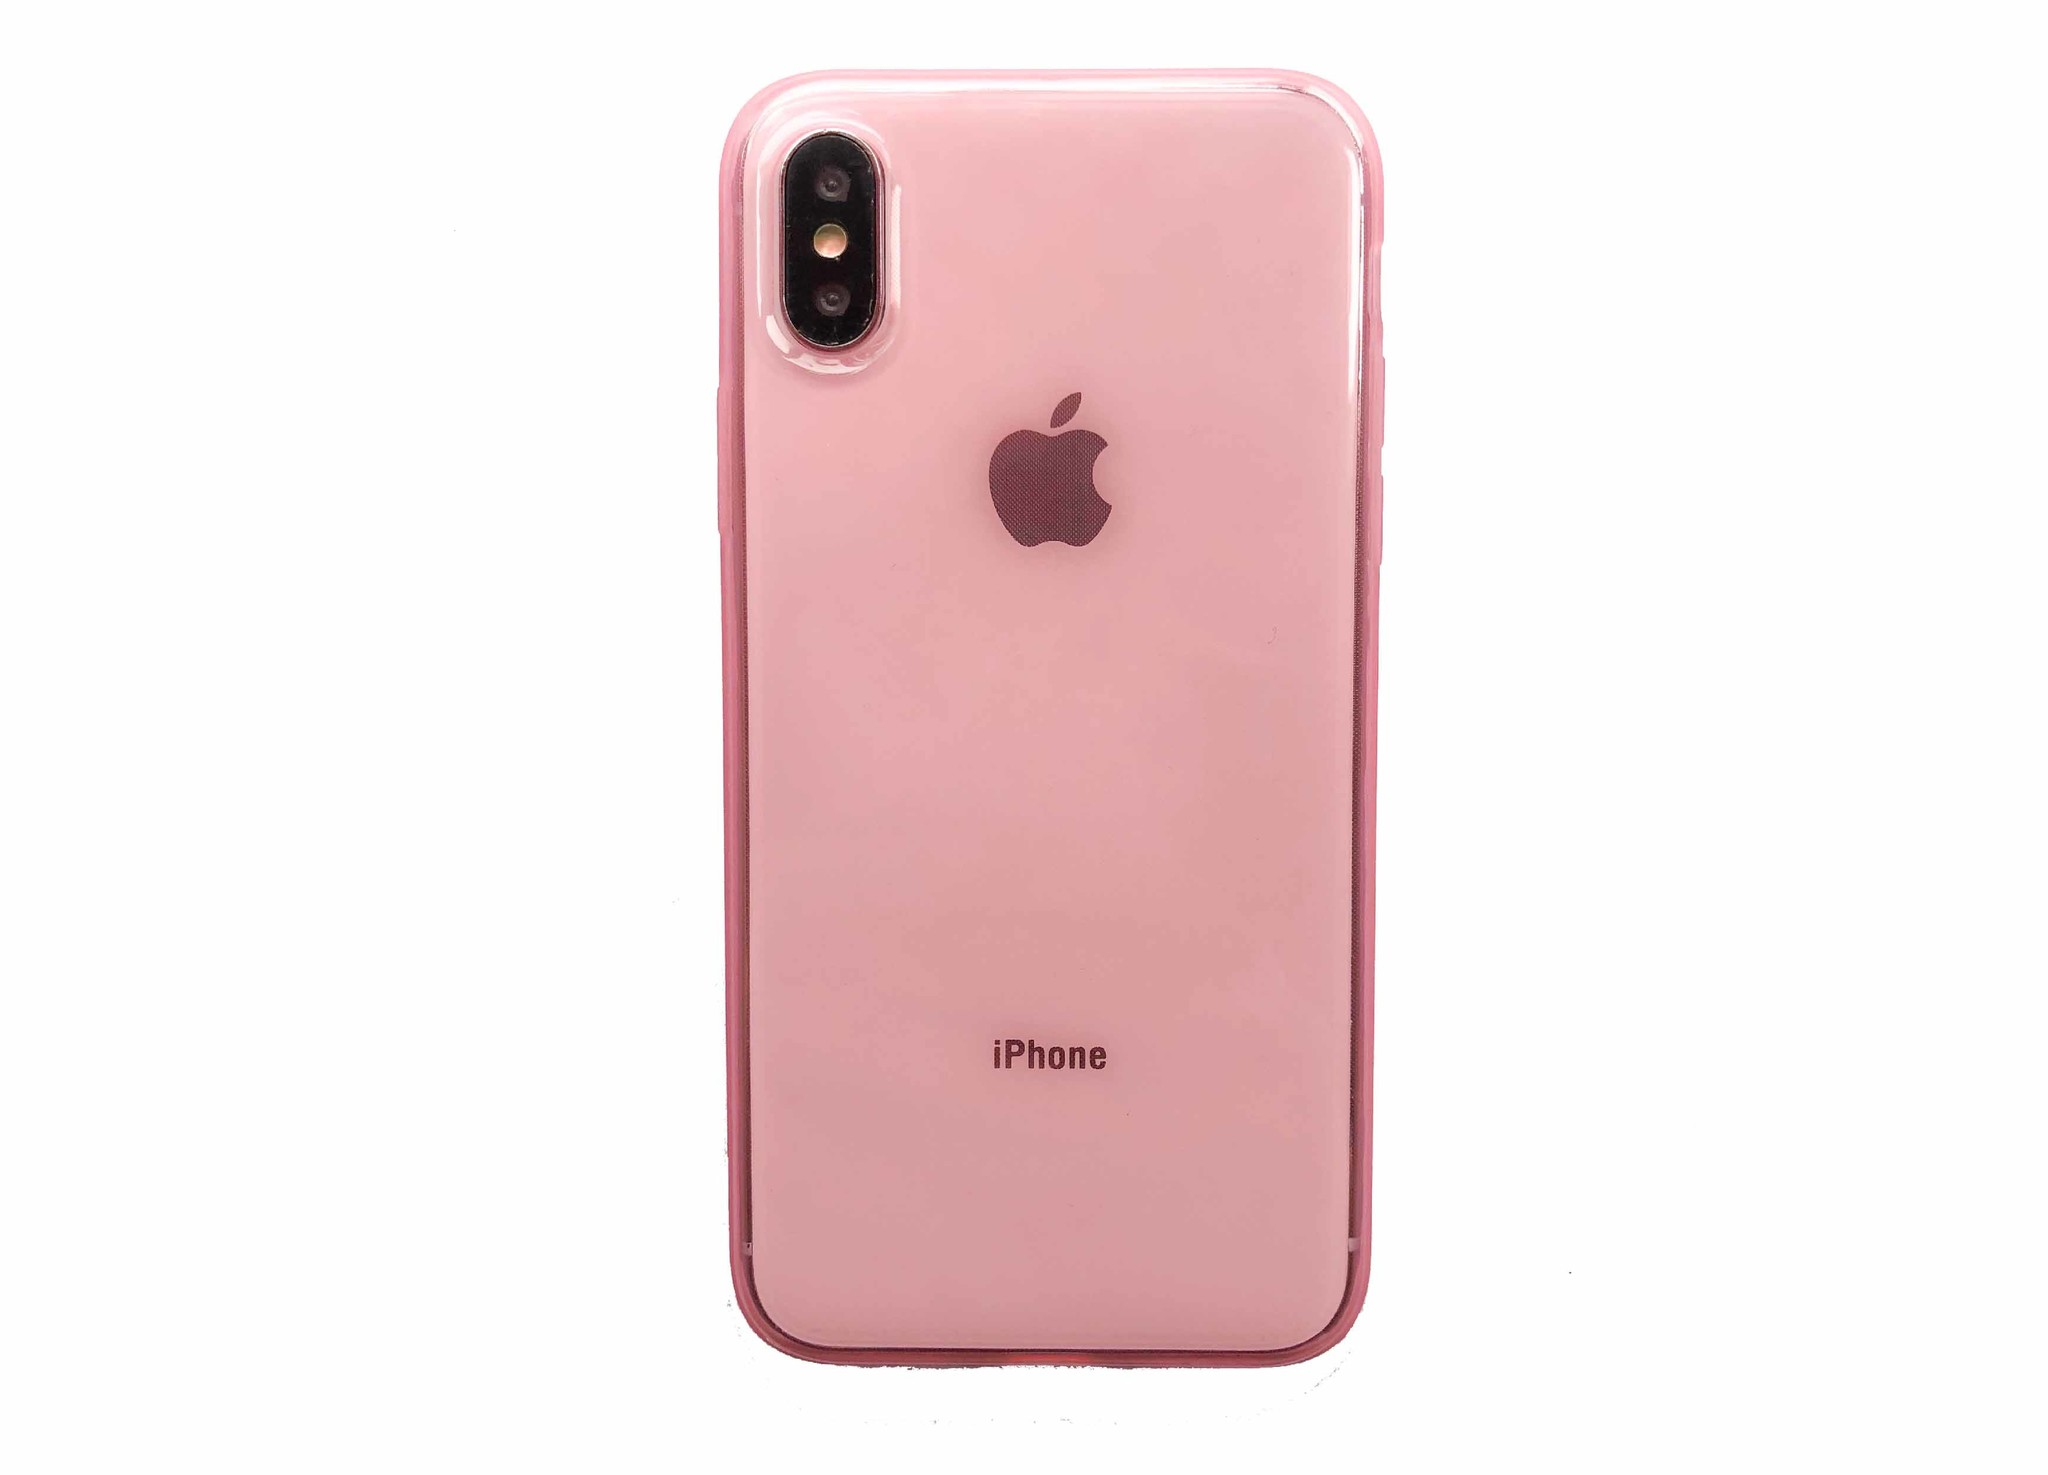 Smartphonehoesje iPhone 11 Pro Max | Roze / transparant